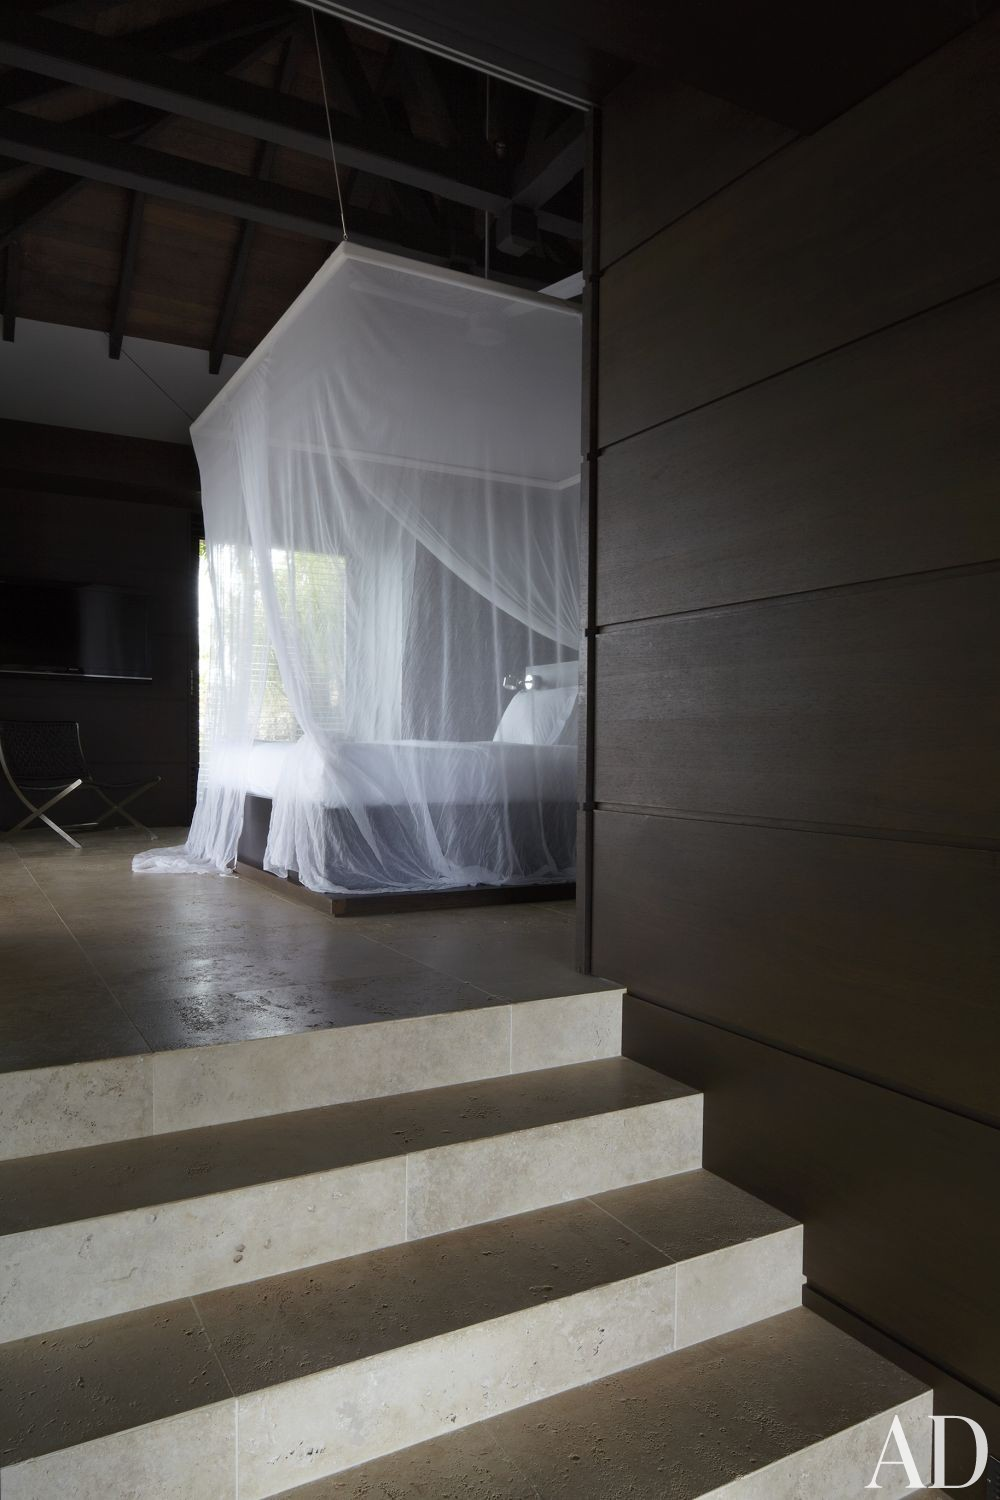 Contemporary Bedroom and Wolfgang Ludes and Johannes Zingerle in St. Barts